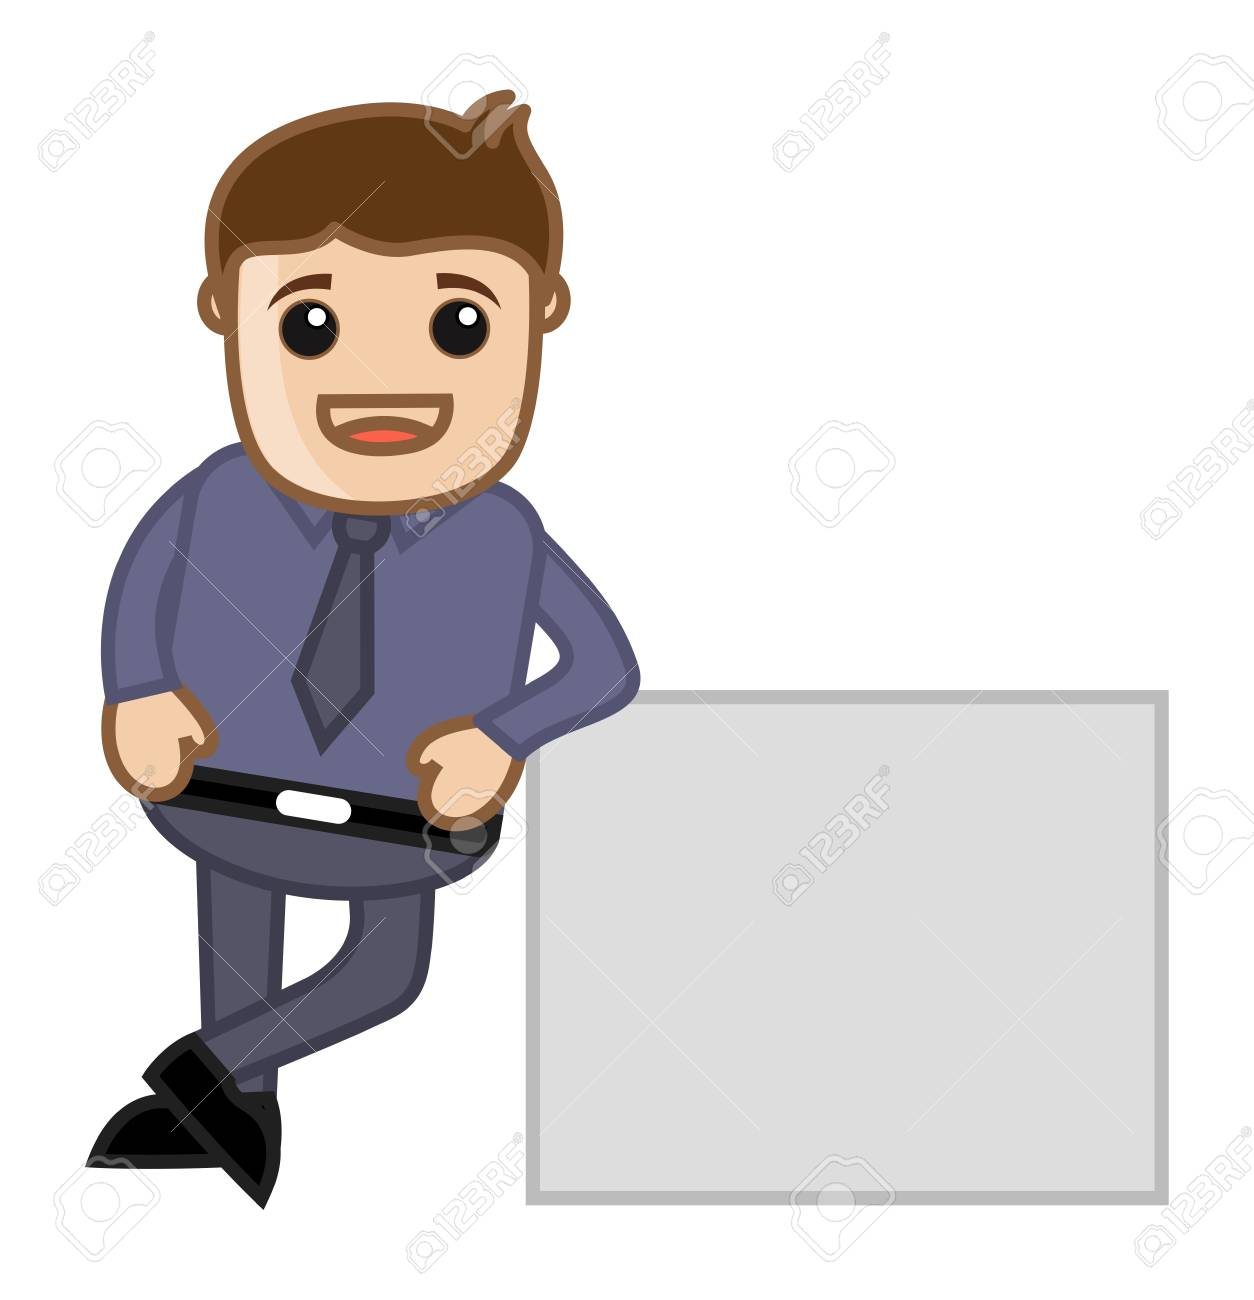 Man with White Banner - Business Cartoon Character Vector Stock Vector - 21098211